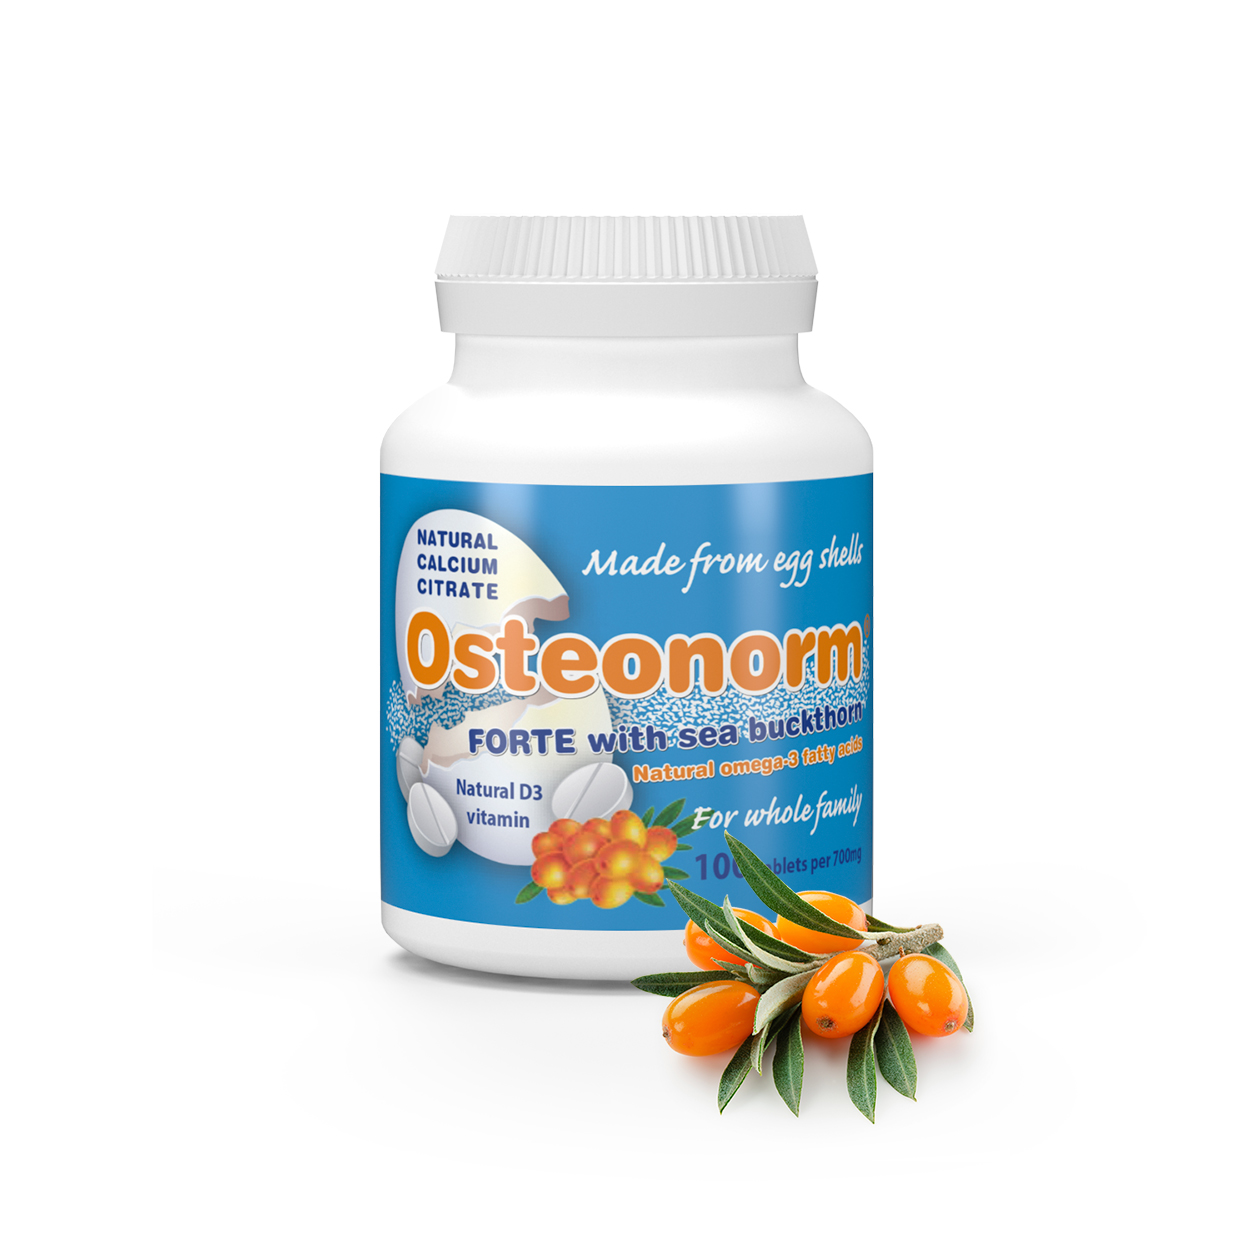 Osteonorm_Seabuckthorn_02 Osteonorm FORTE with Sea Buckthorn 100 tablets per 700mg